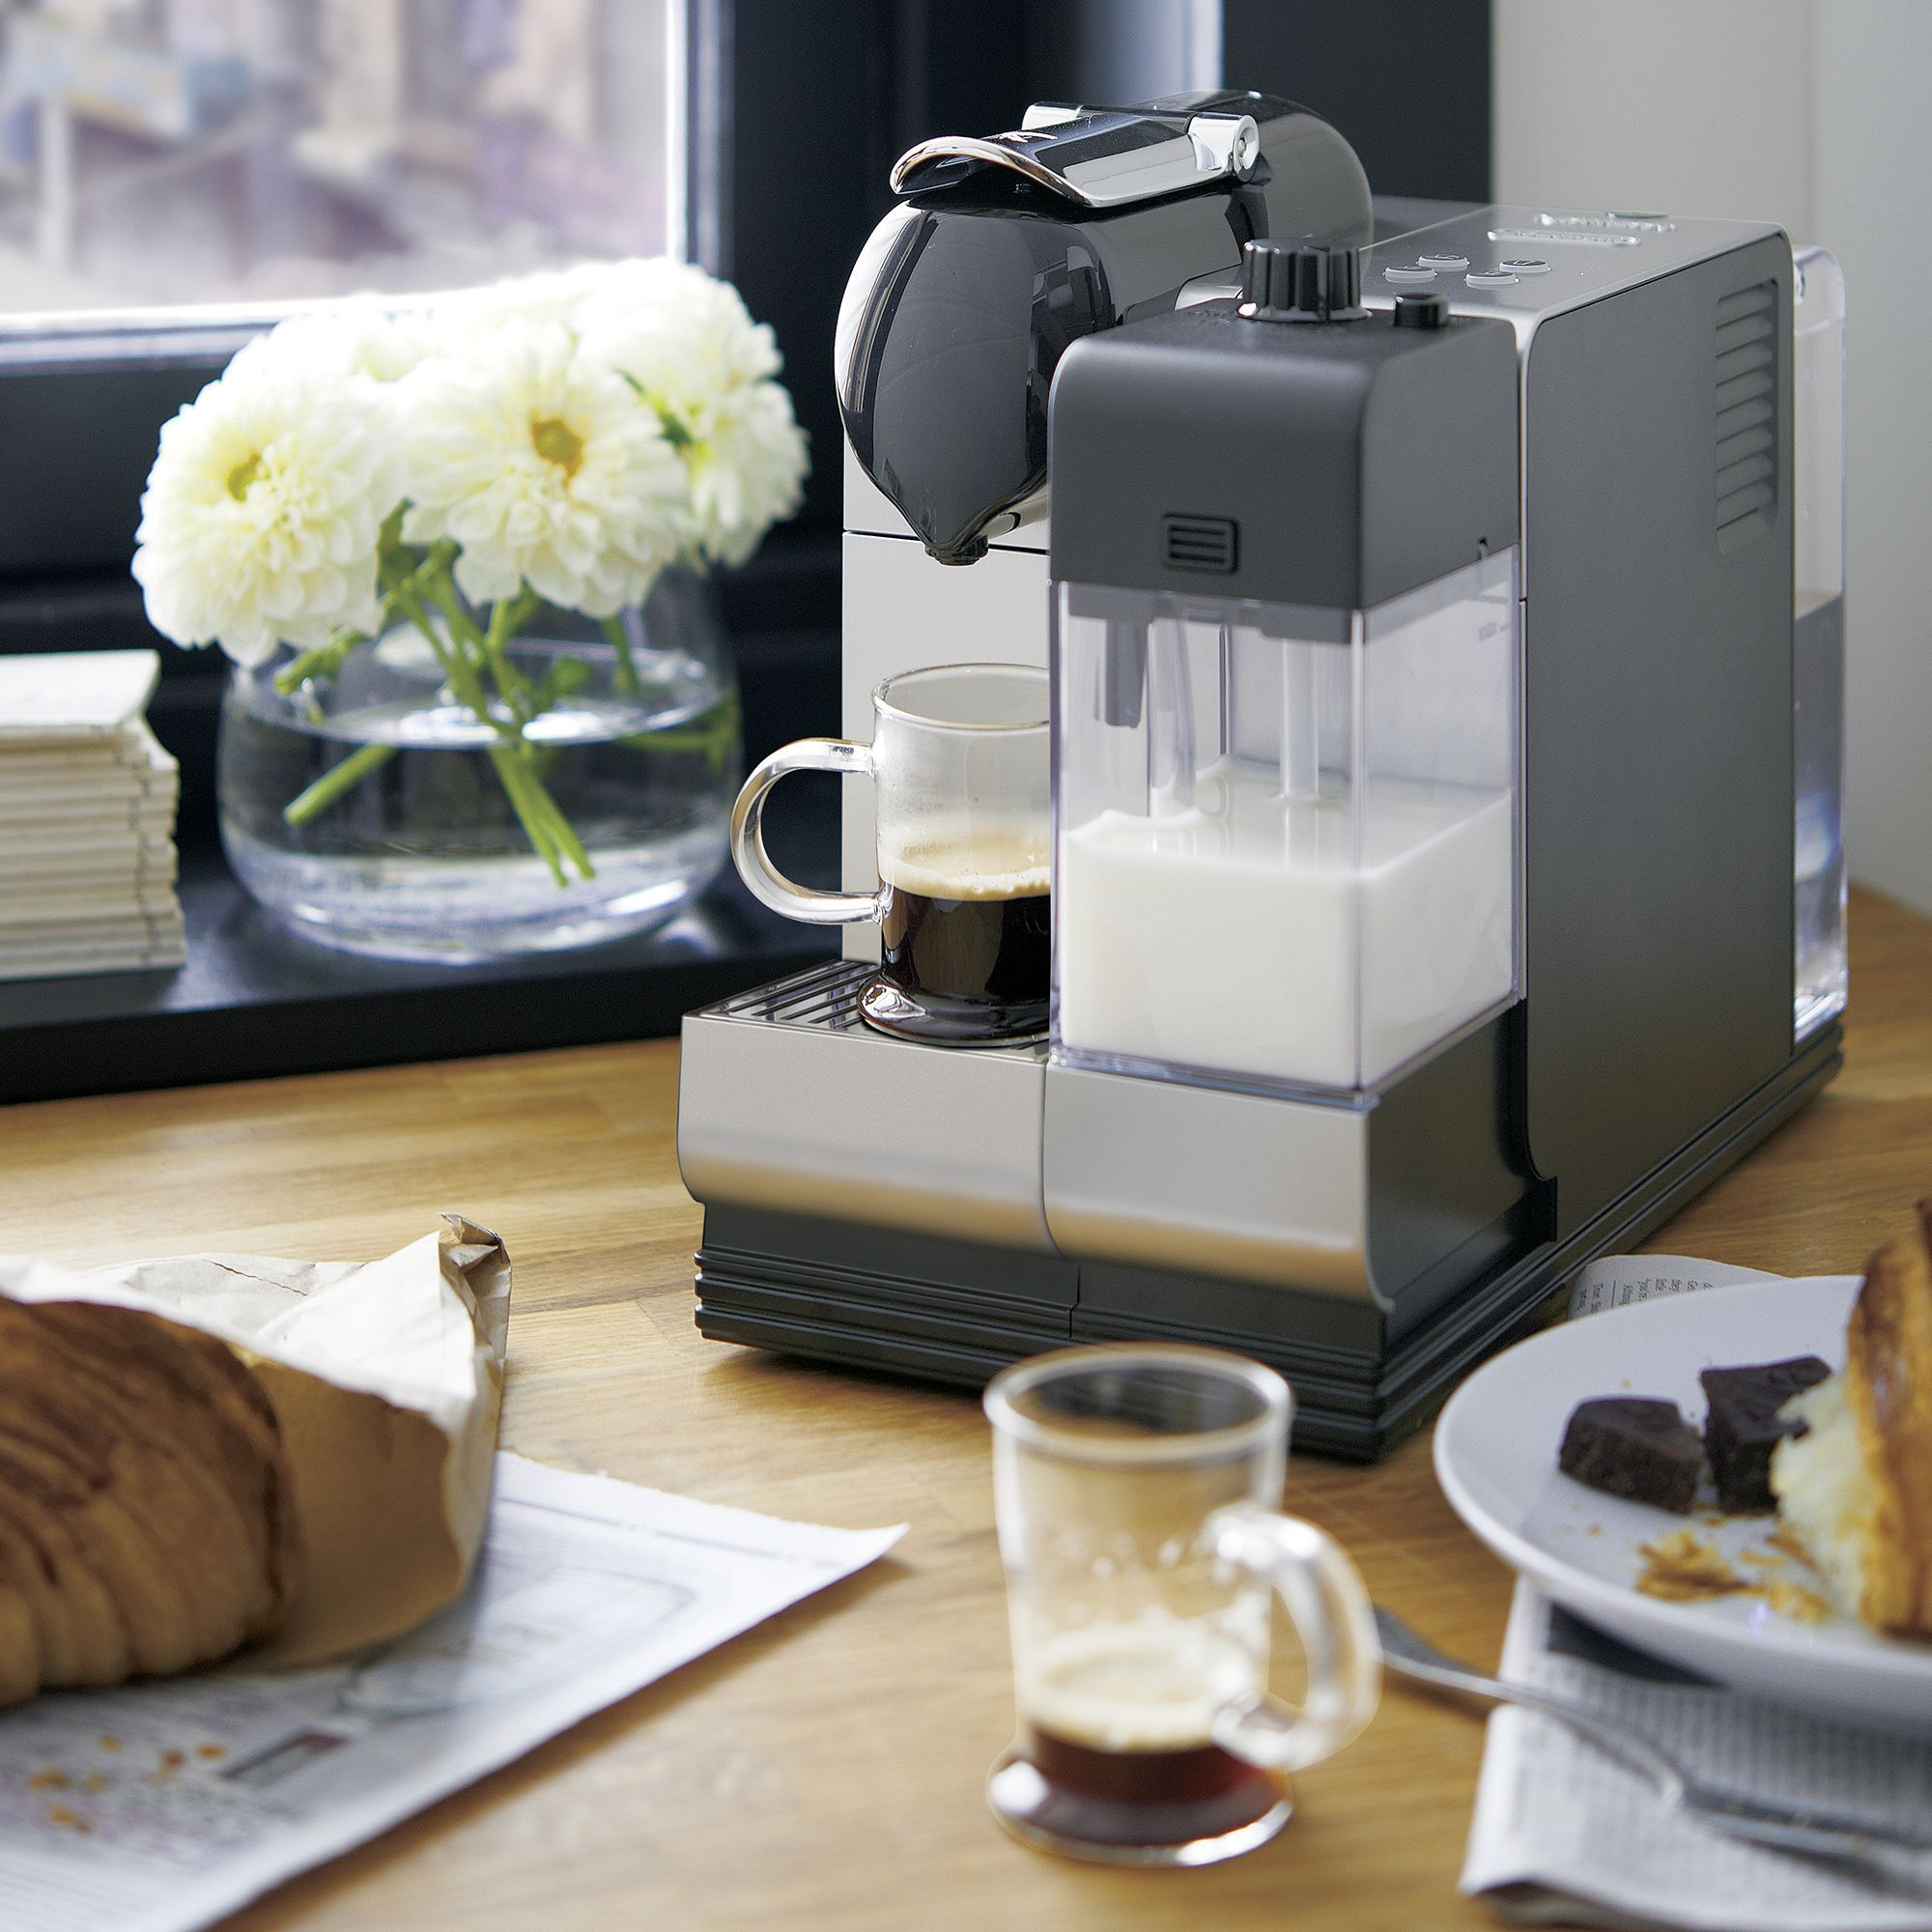 Two Leaders In Modern Coffee Technology Unite To Create A Premium Pump Espresso Maker With The C Espresso Maker Nespresso Lattissima Crate And Barrel